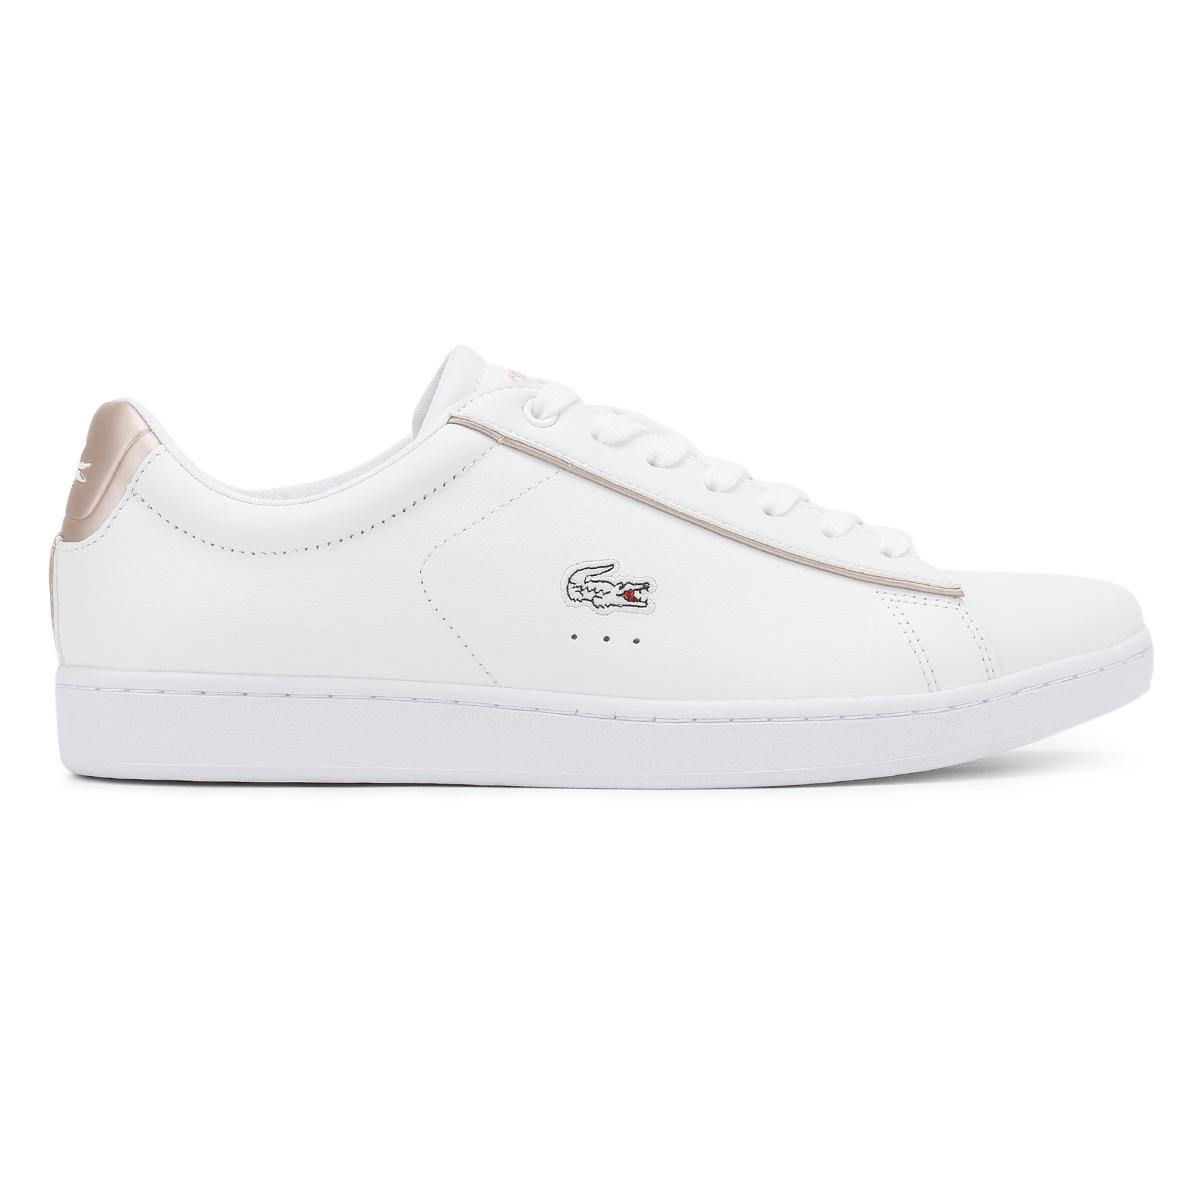 a22d827b6925f Lacoste - Womens White light Pink Carnaby Evo 217 2 Spw Trainers - Lyst